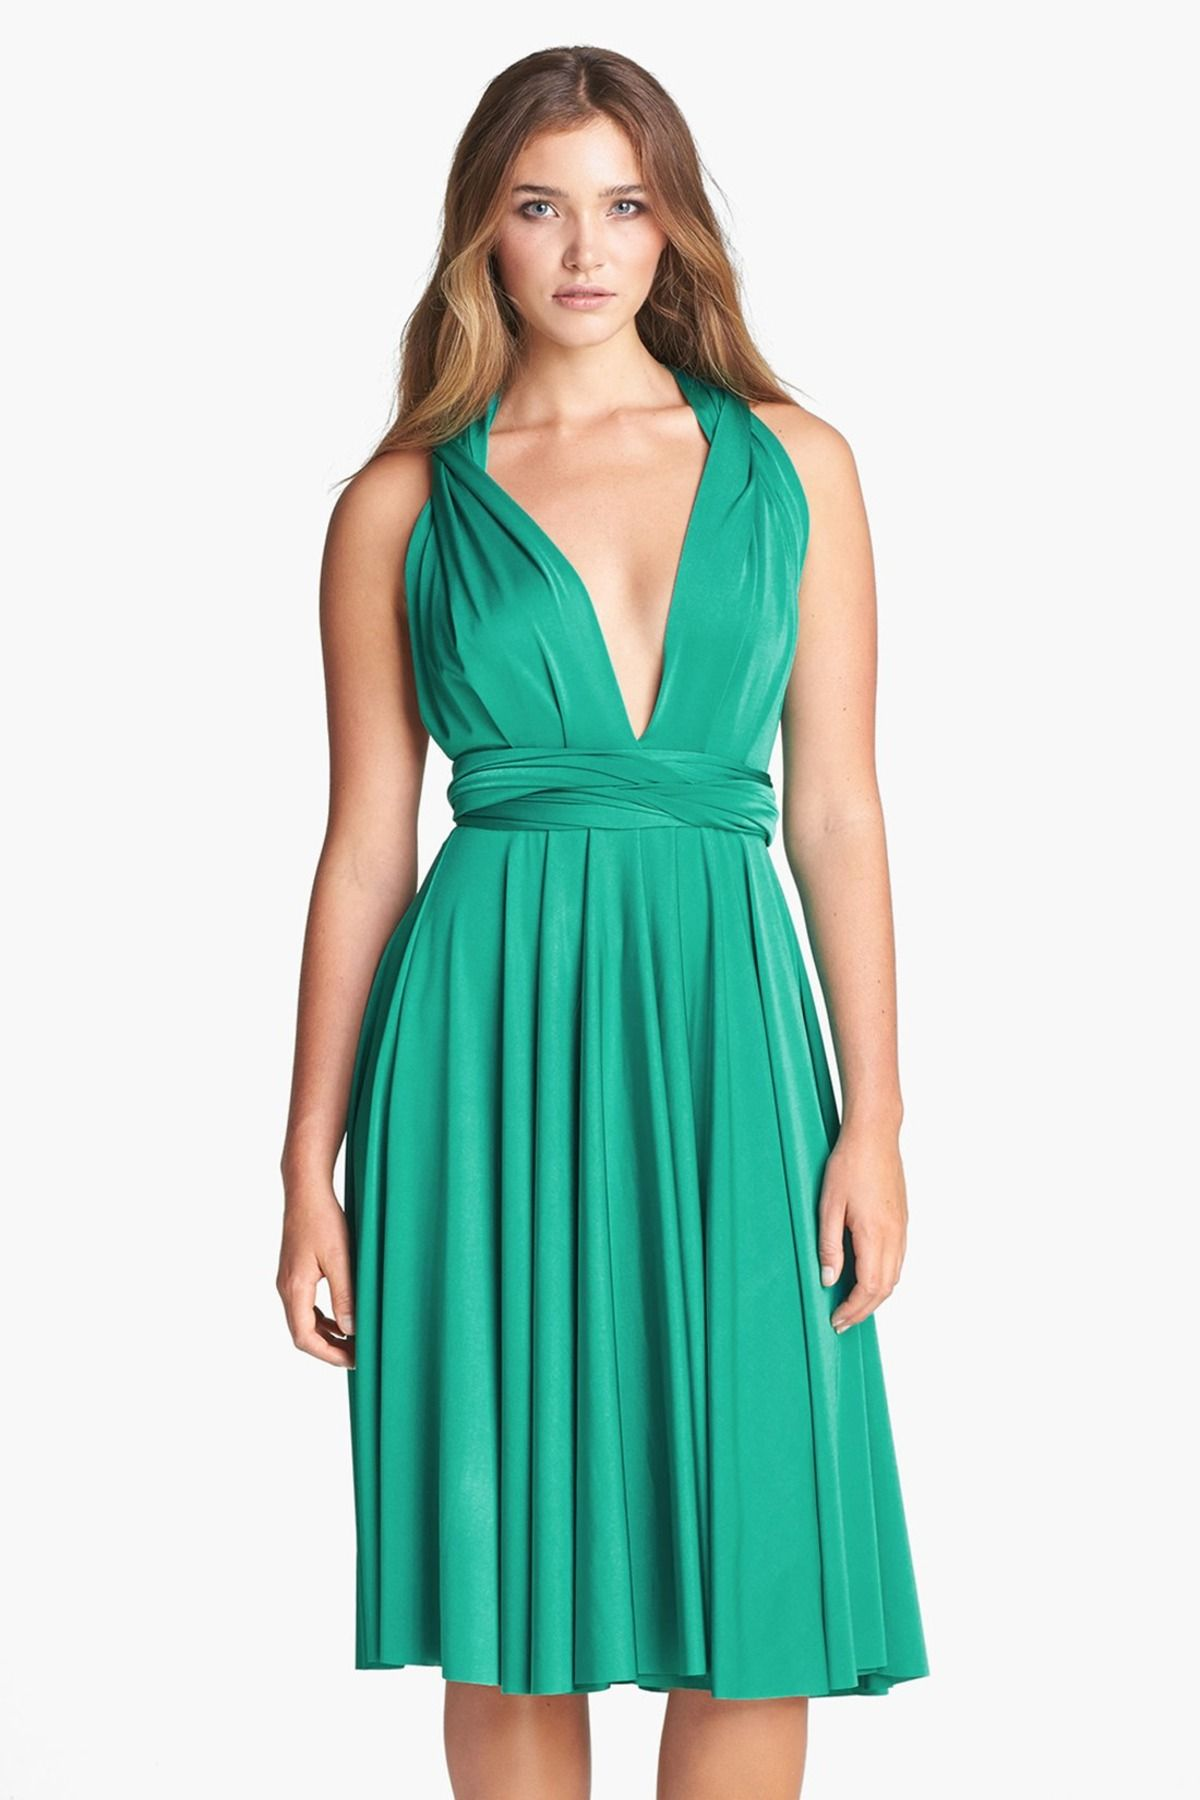 Convertible jersey gown regular u plus cruise clothes